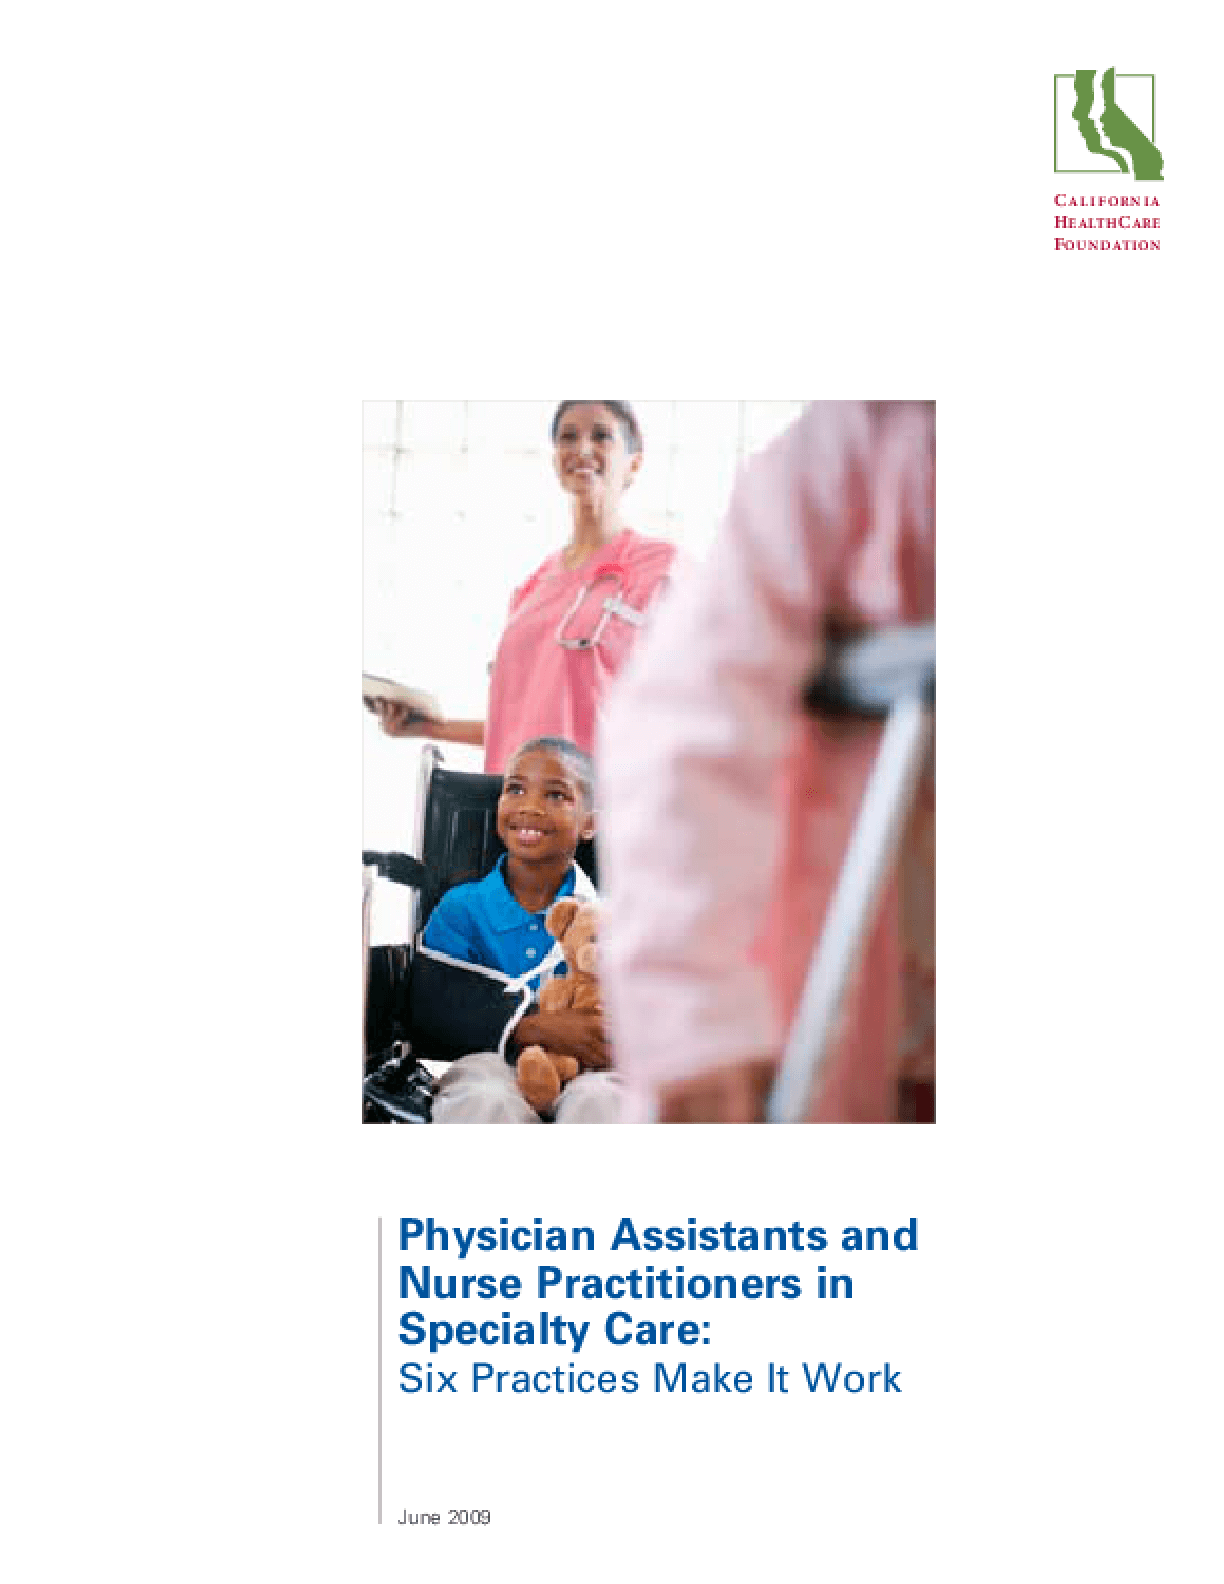 Physician Assistants and Nurse Practitioners in Specialty Care: Six Practices Make It Work